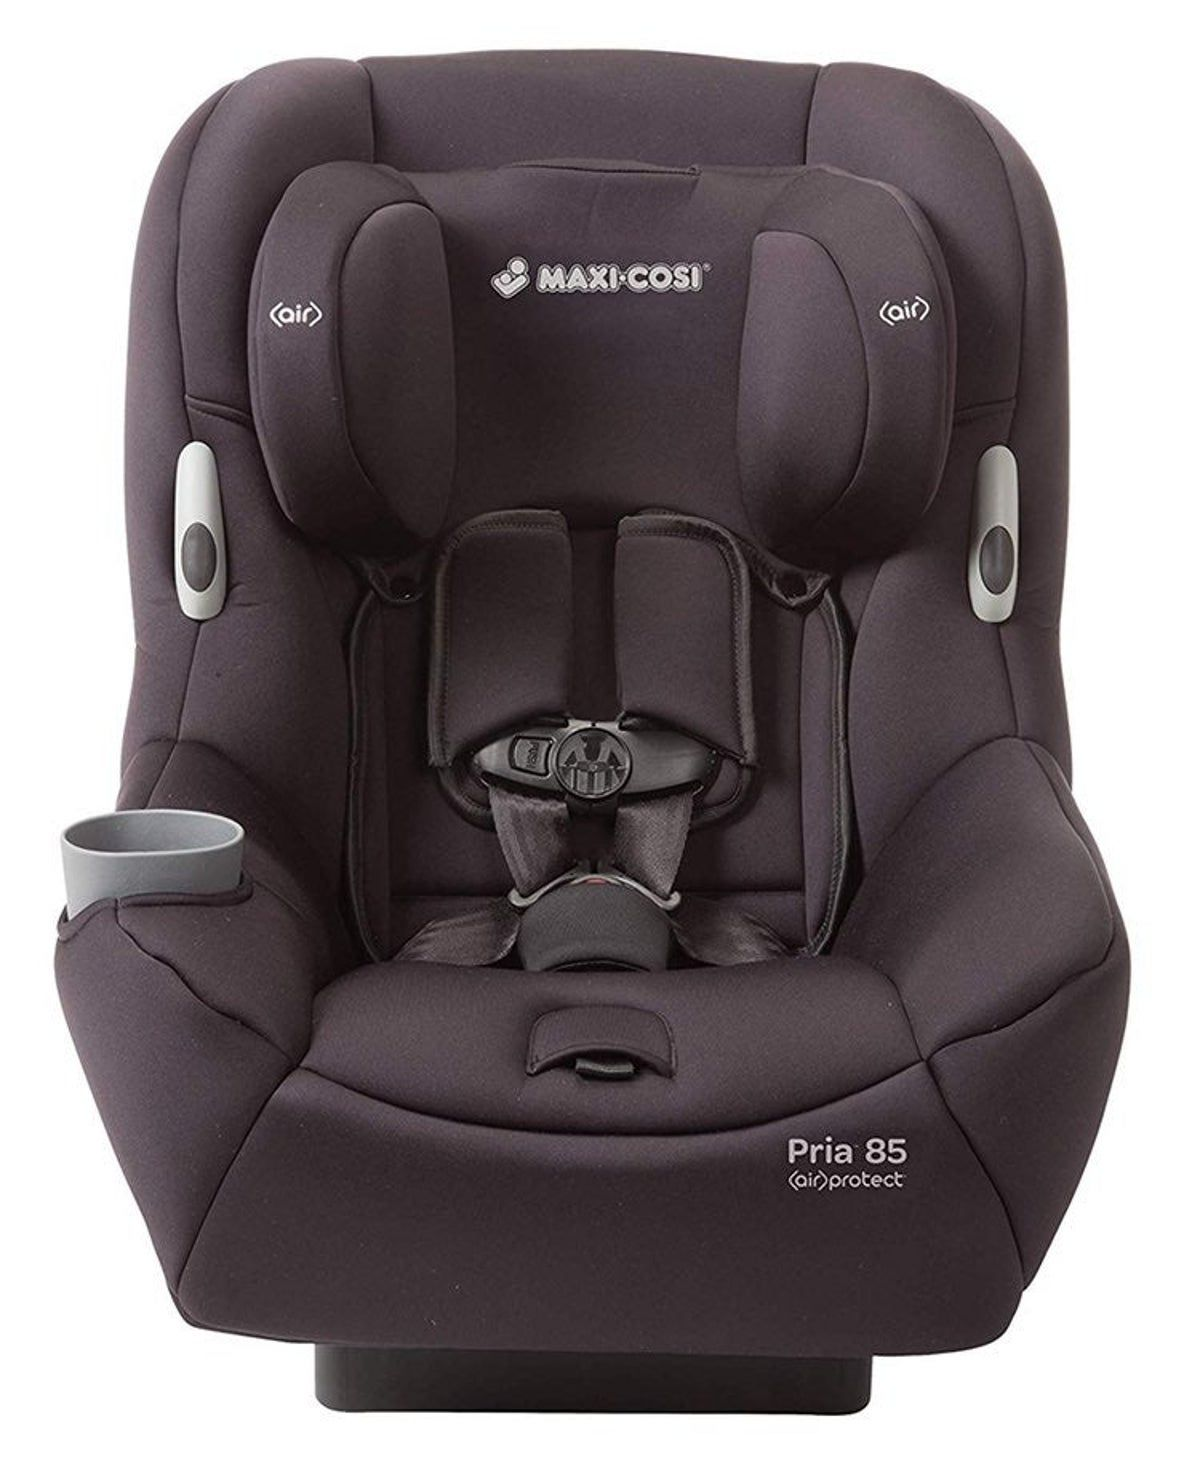 How To Get Cover Off Maxi Cosi Car Seat